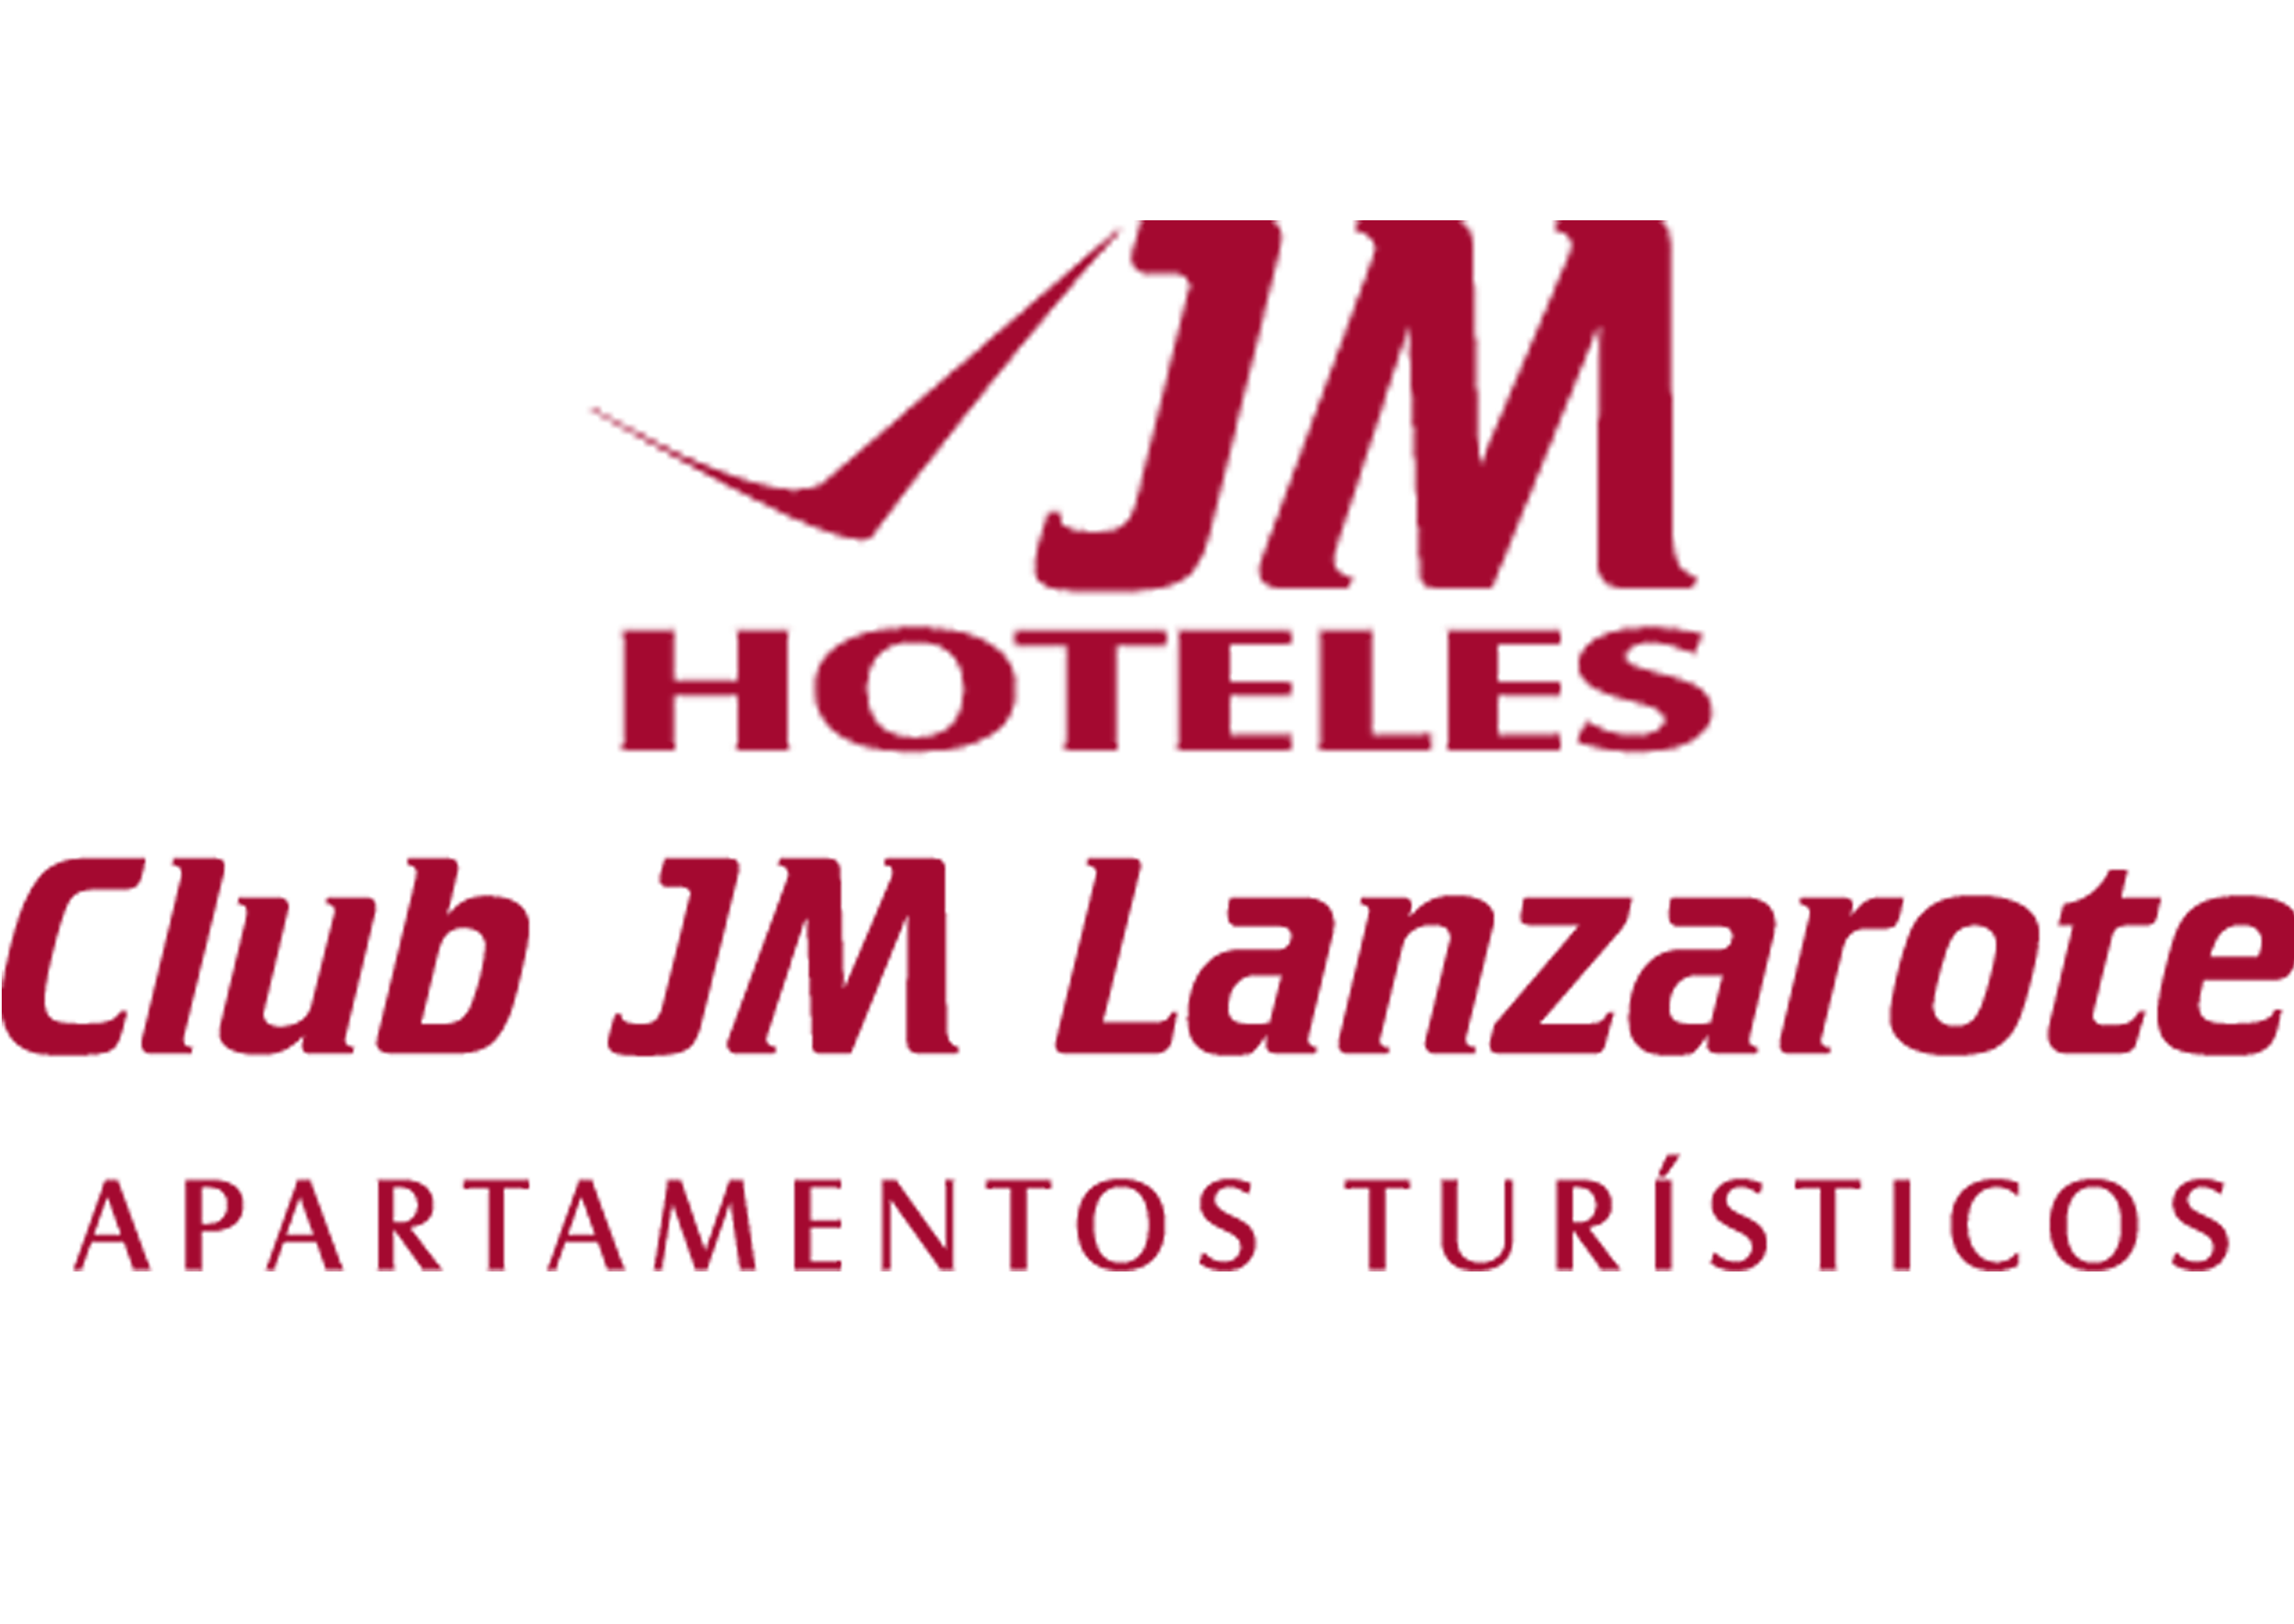 Club JM Lanzarote